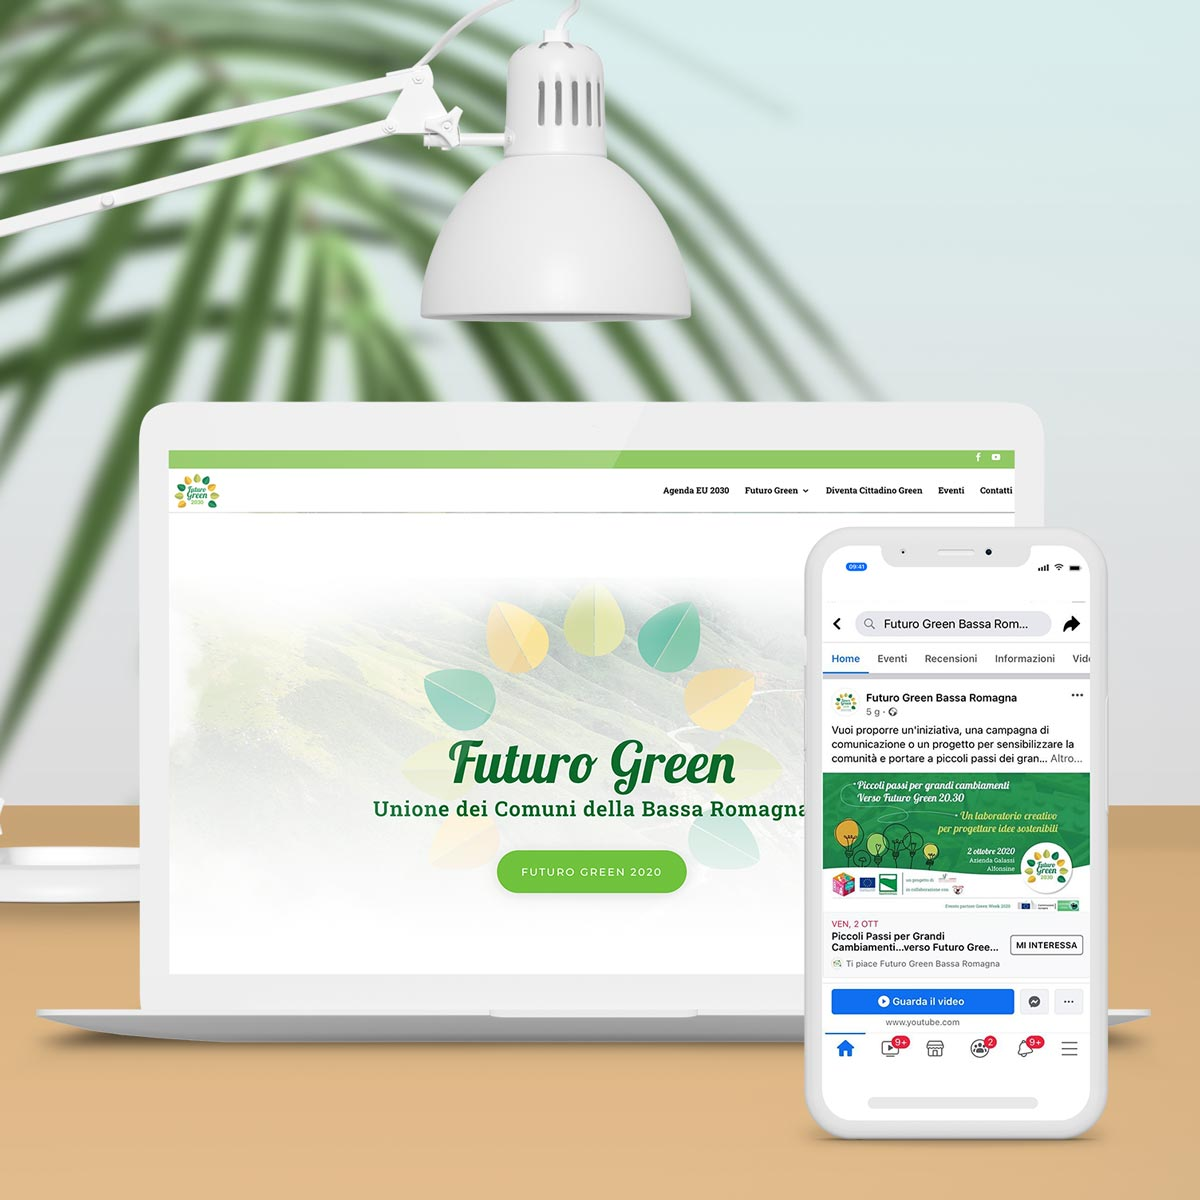 futuro-green-2030-bassaromagna-green-marketing-web-design-development